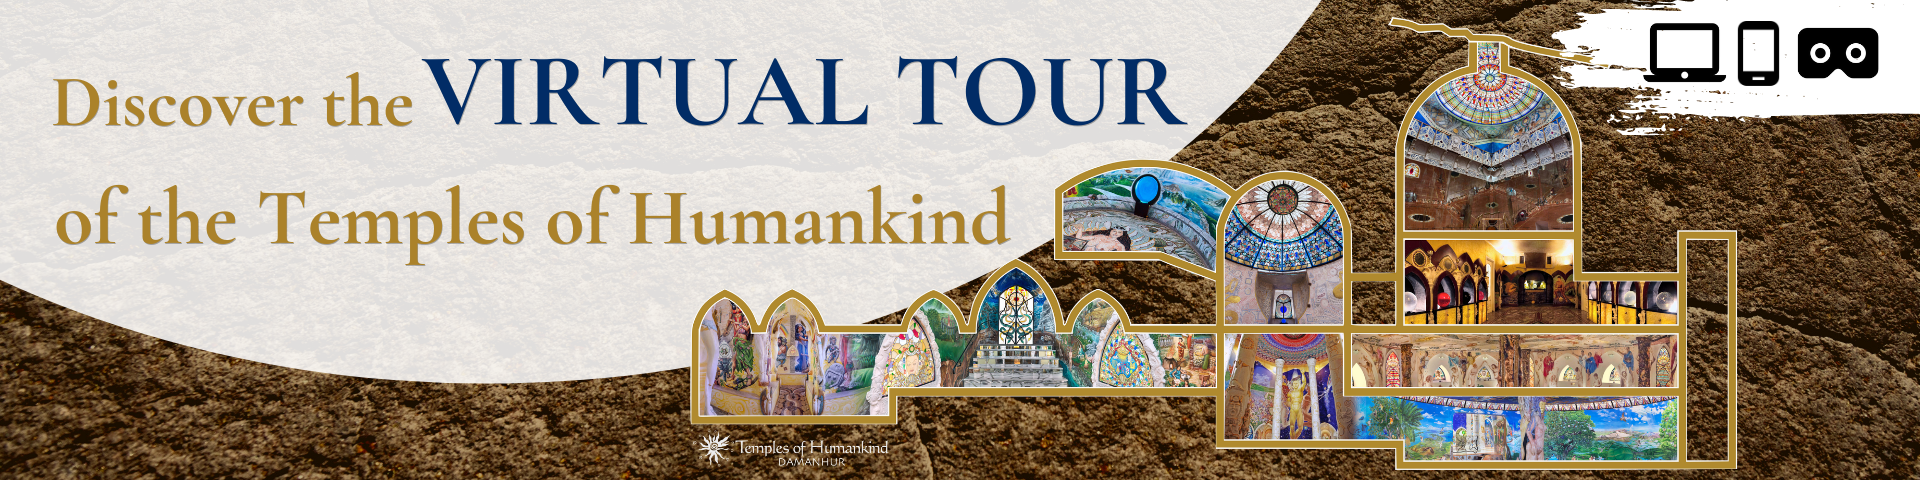 Temples of Humankind - Virtual Tour